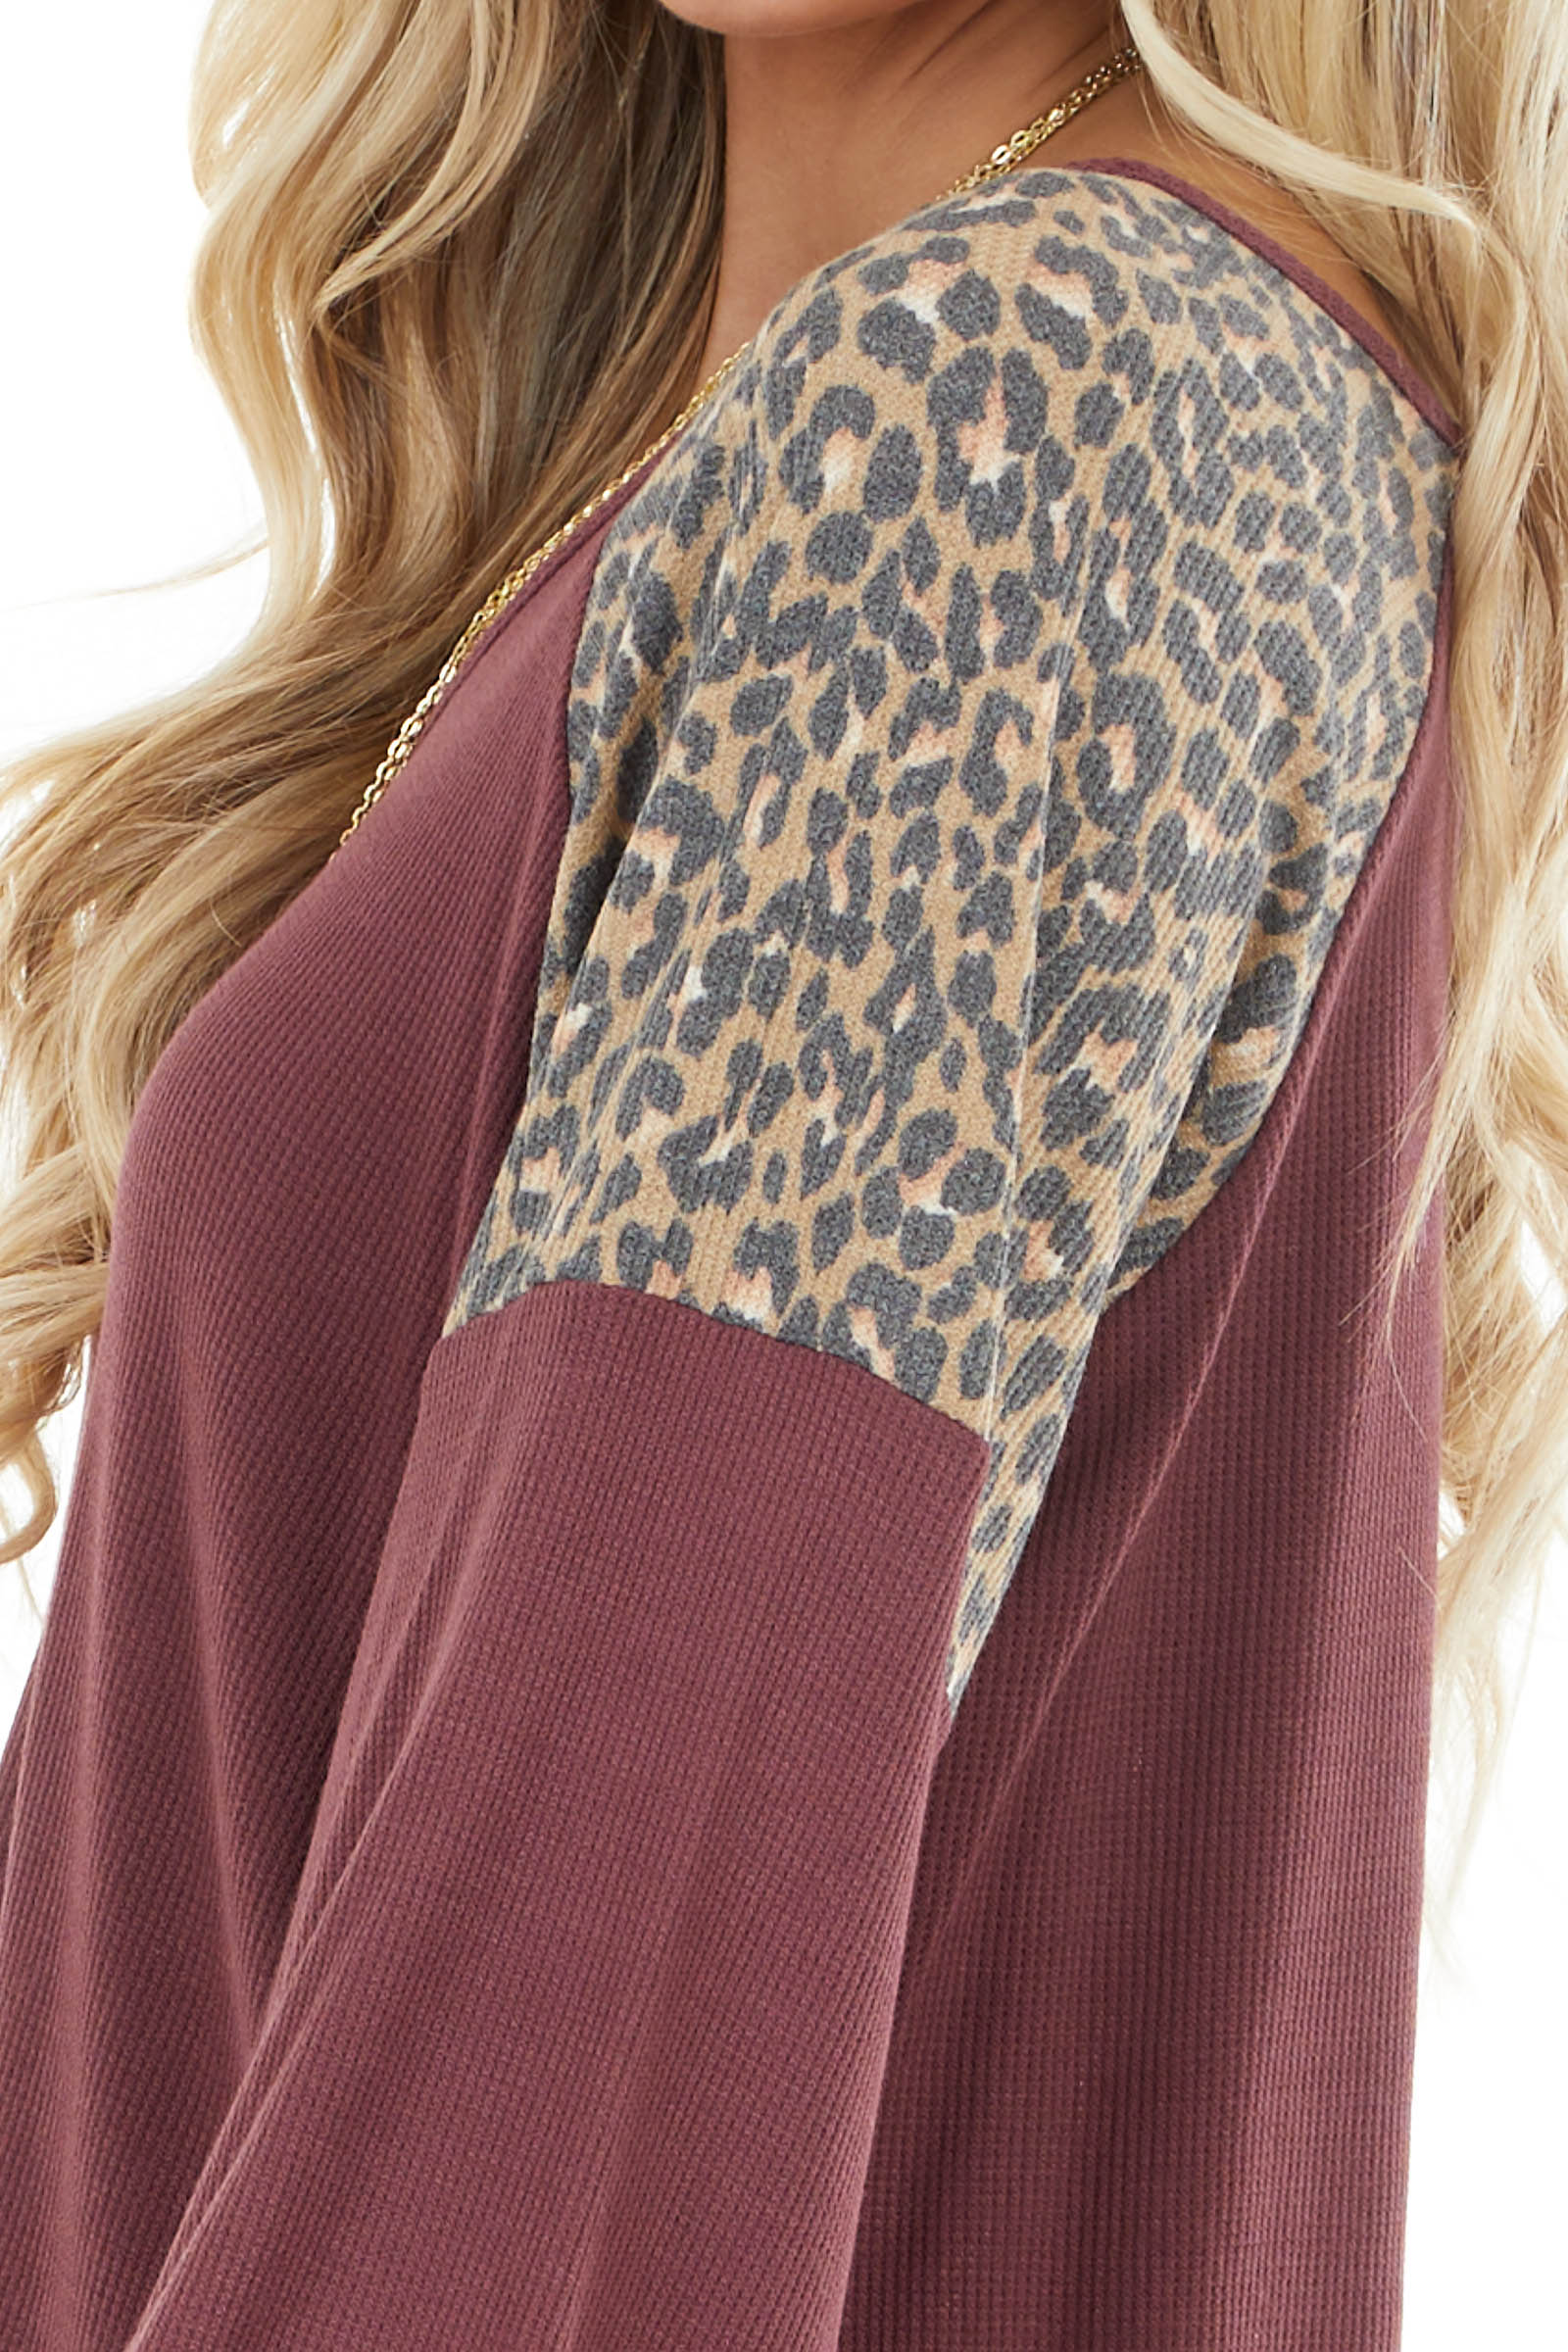 Wine and Khaki Leopard Print Waffle Knit Long Sleeve Top